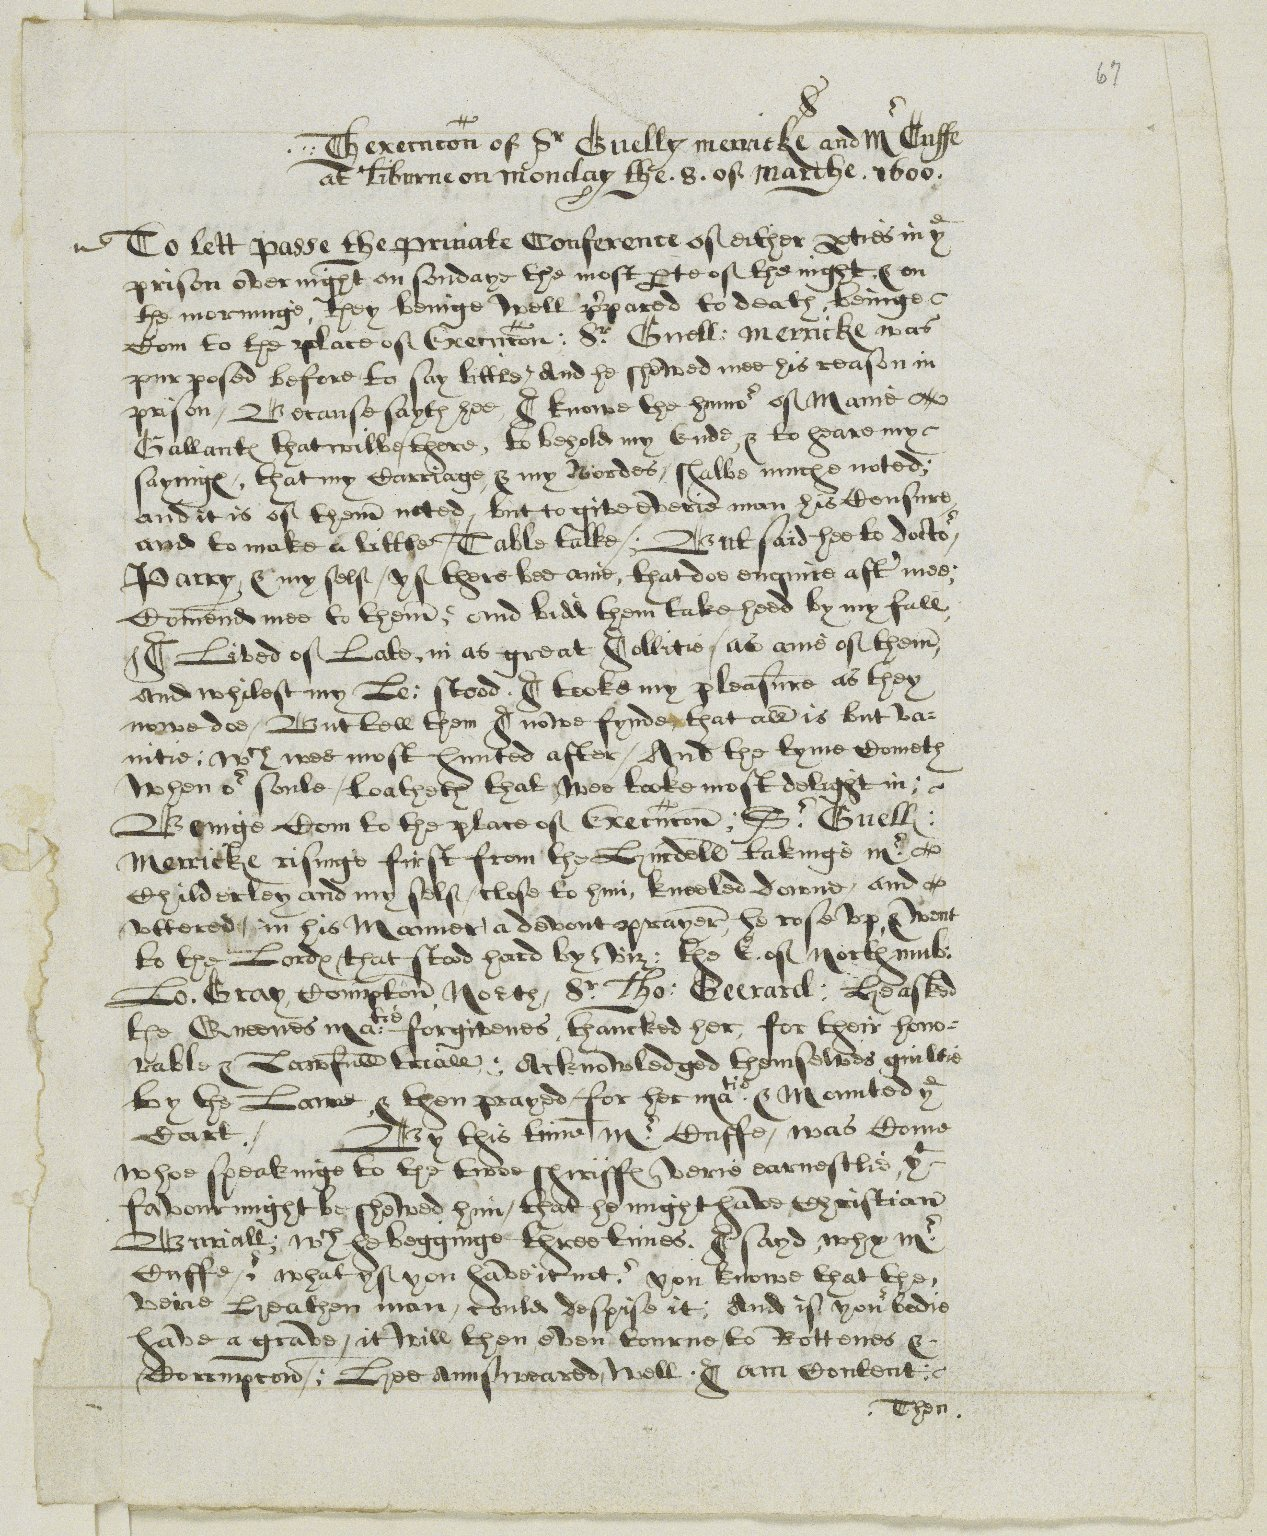 Papers relating to the Earl of Essex, Sir Gelly Meyrick and the Essex Rebellion, 1596-1602